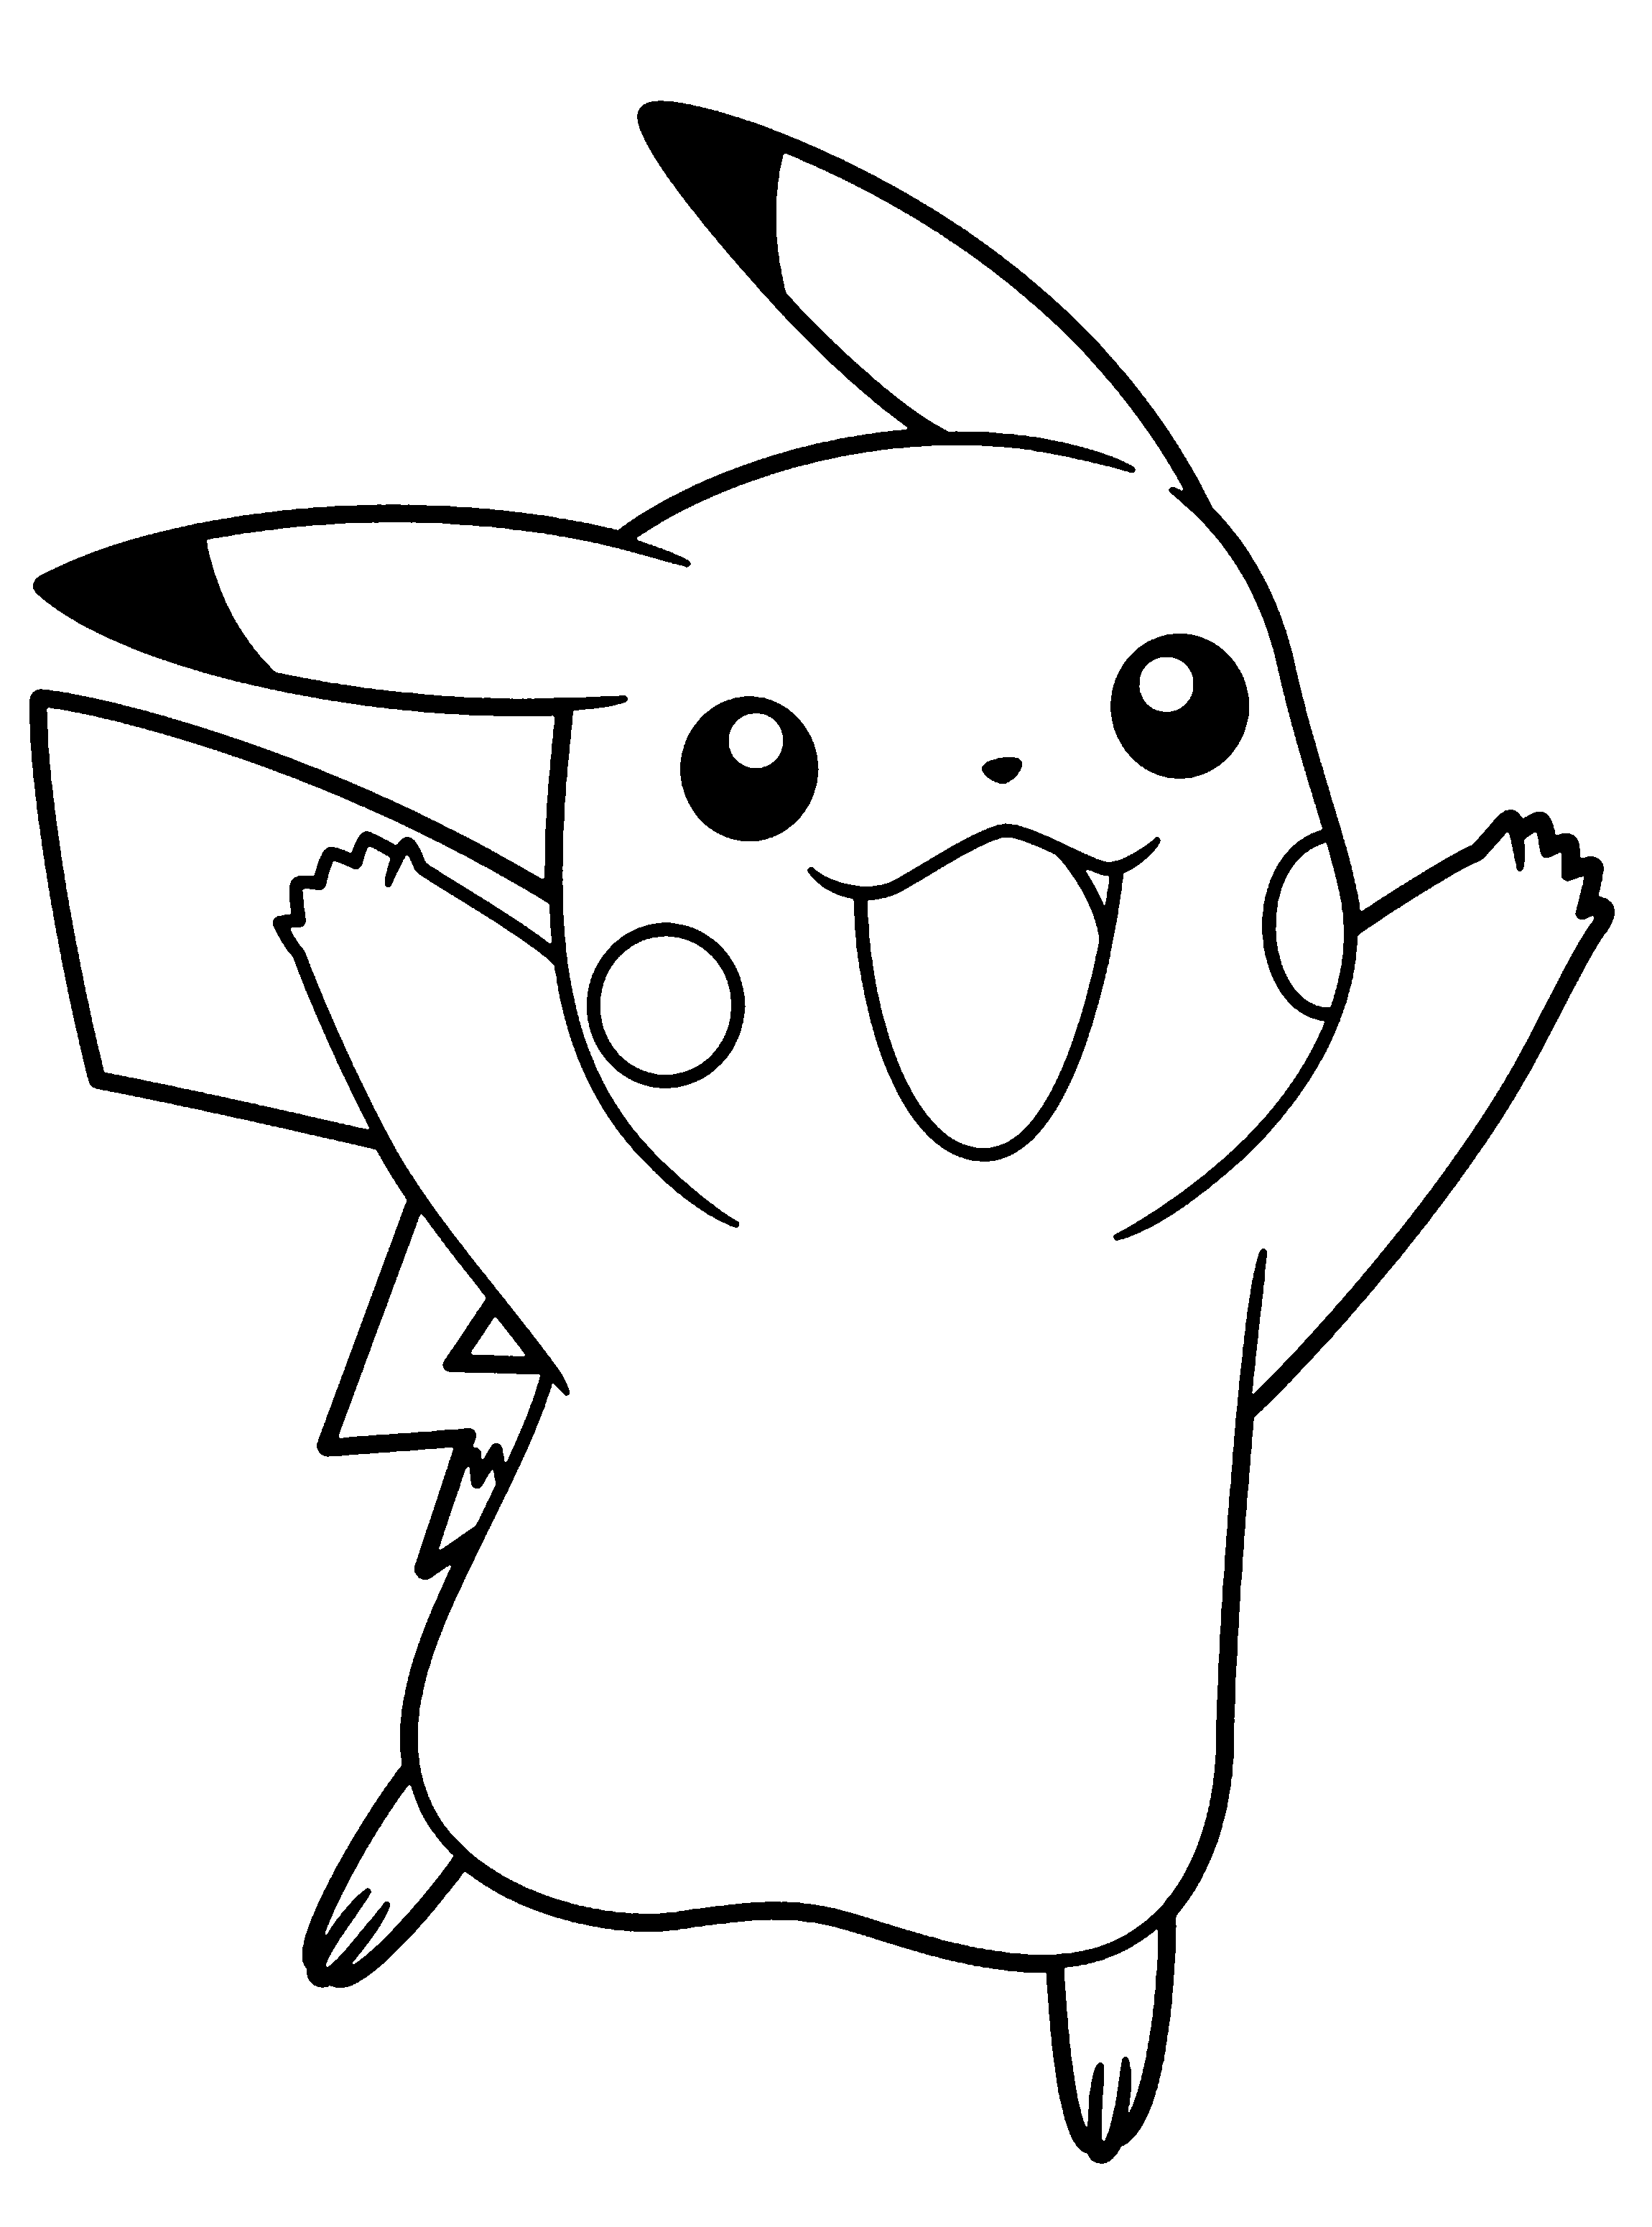 Pikachu Coloring Pages To Print Pokemon Coloring Pages Pokemon Coloring Pikachu Coloring Page